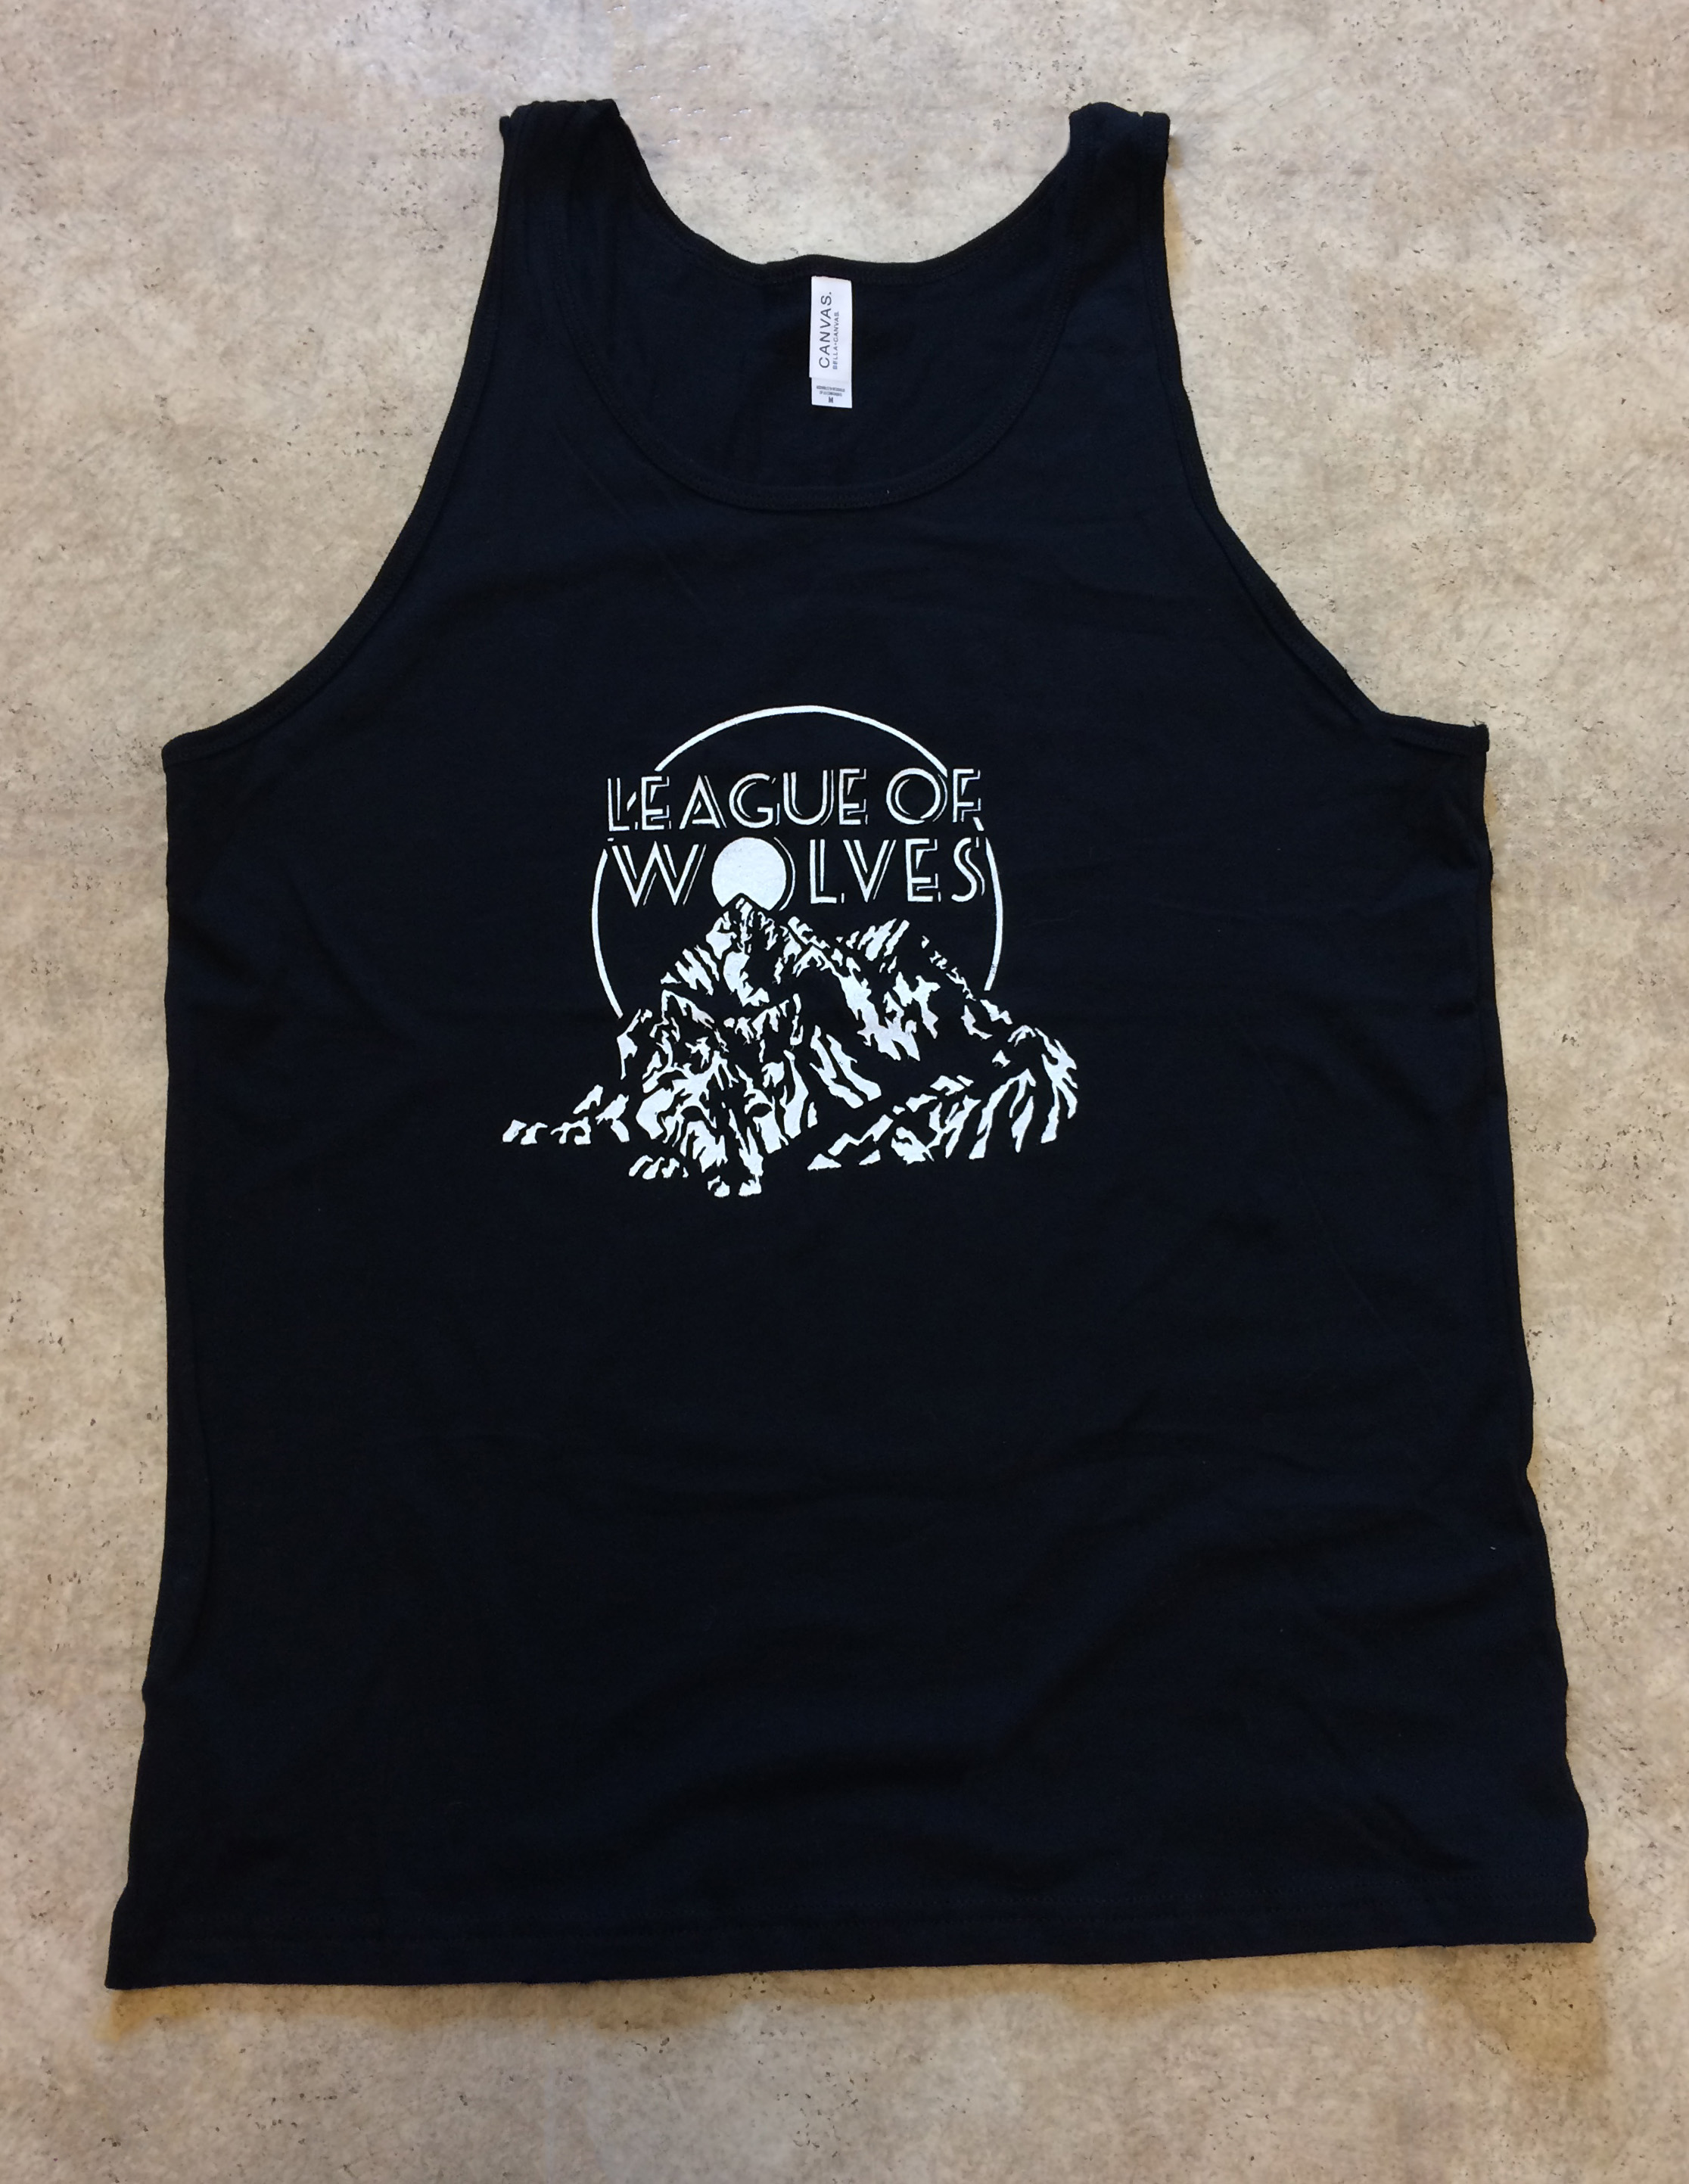 League of Wolves Tank